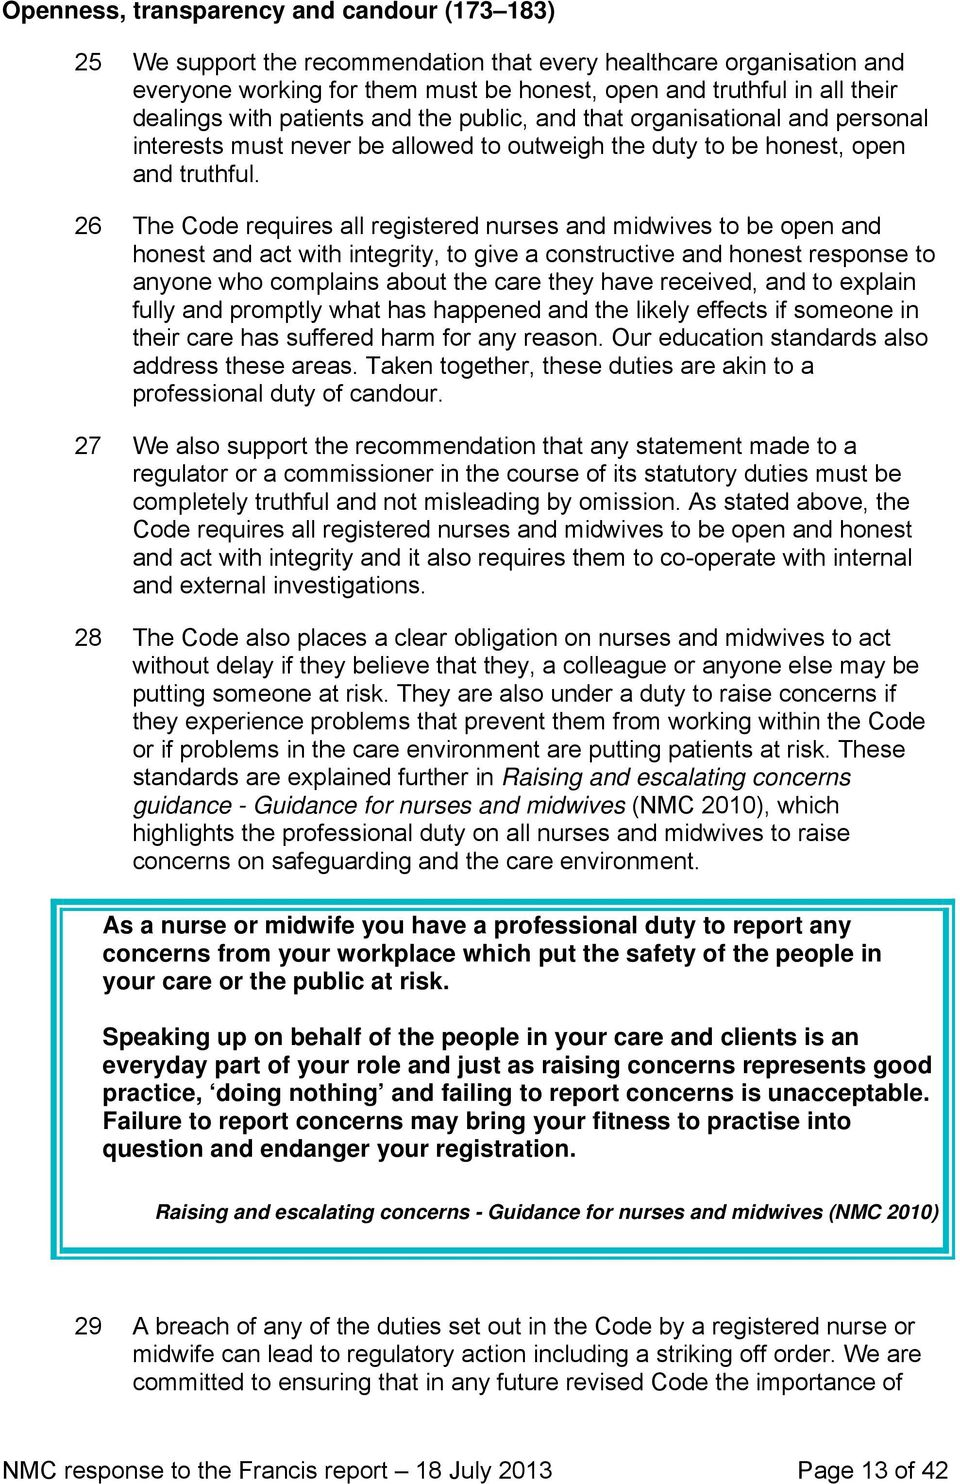 26 The Code requires all registered nurses and midwives to be open and honest and act with integrity, to give a constructive and honest response to anyone who complains about the care they have